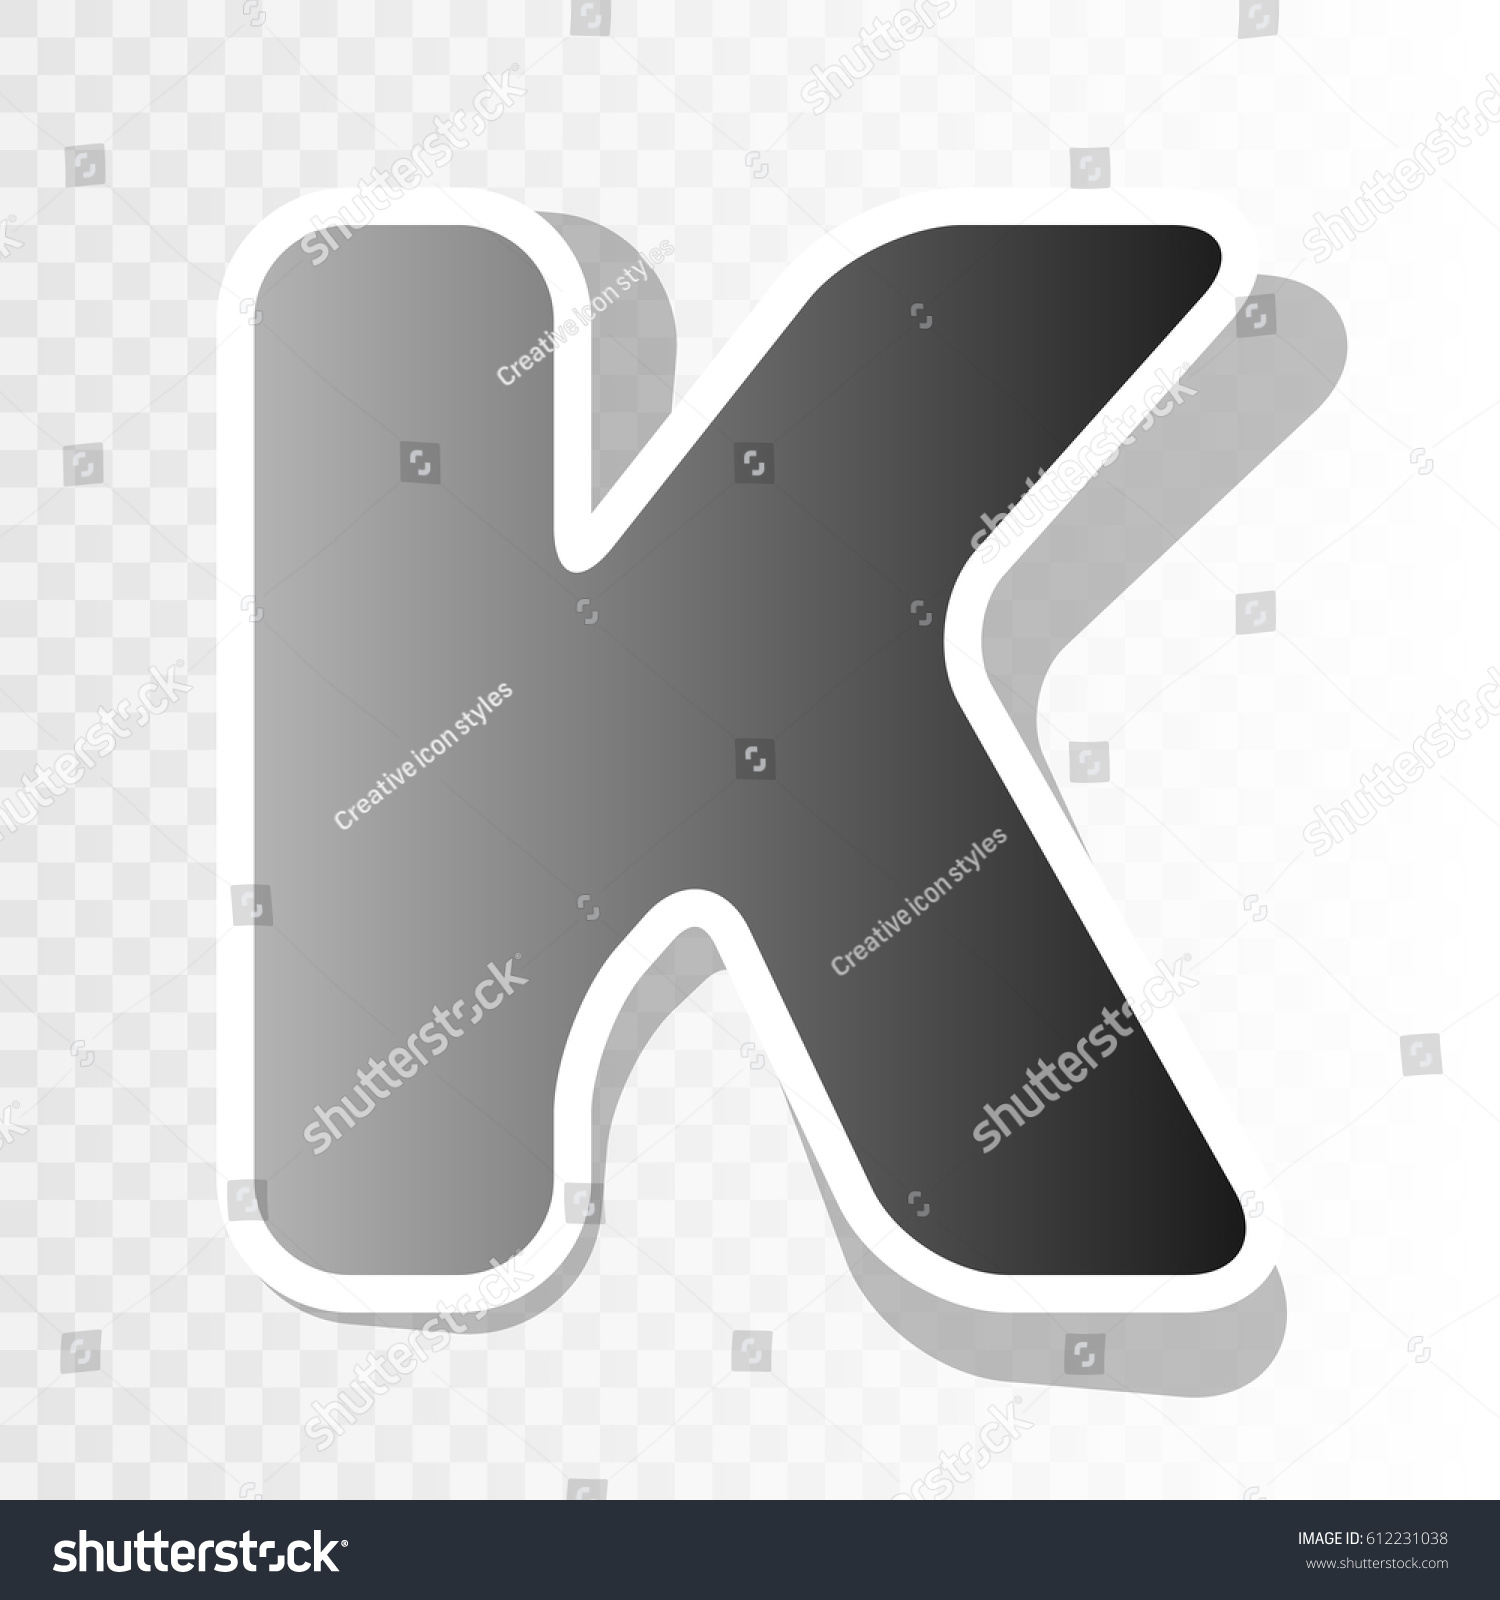 letter k sign design template element vector new year blackish icon on transparent background